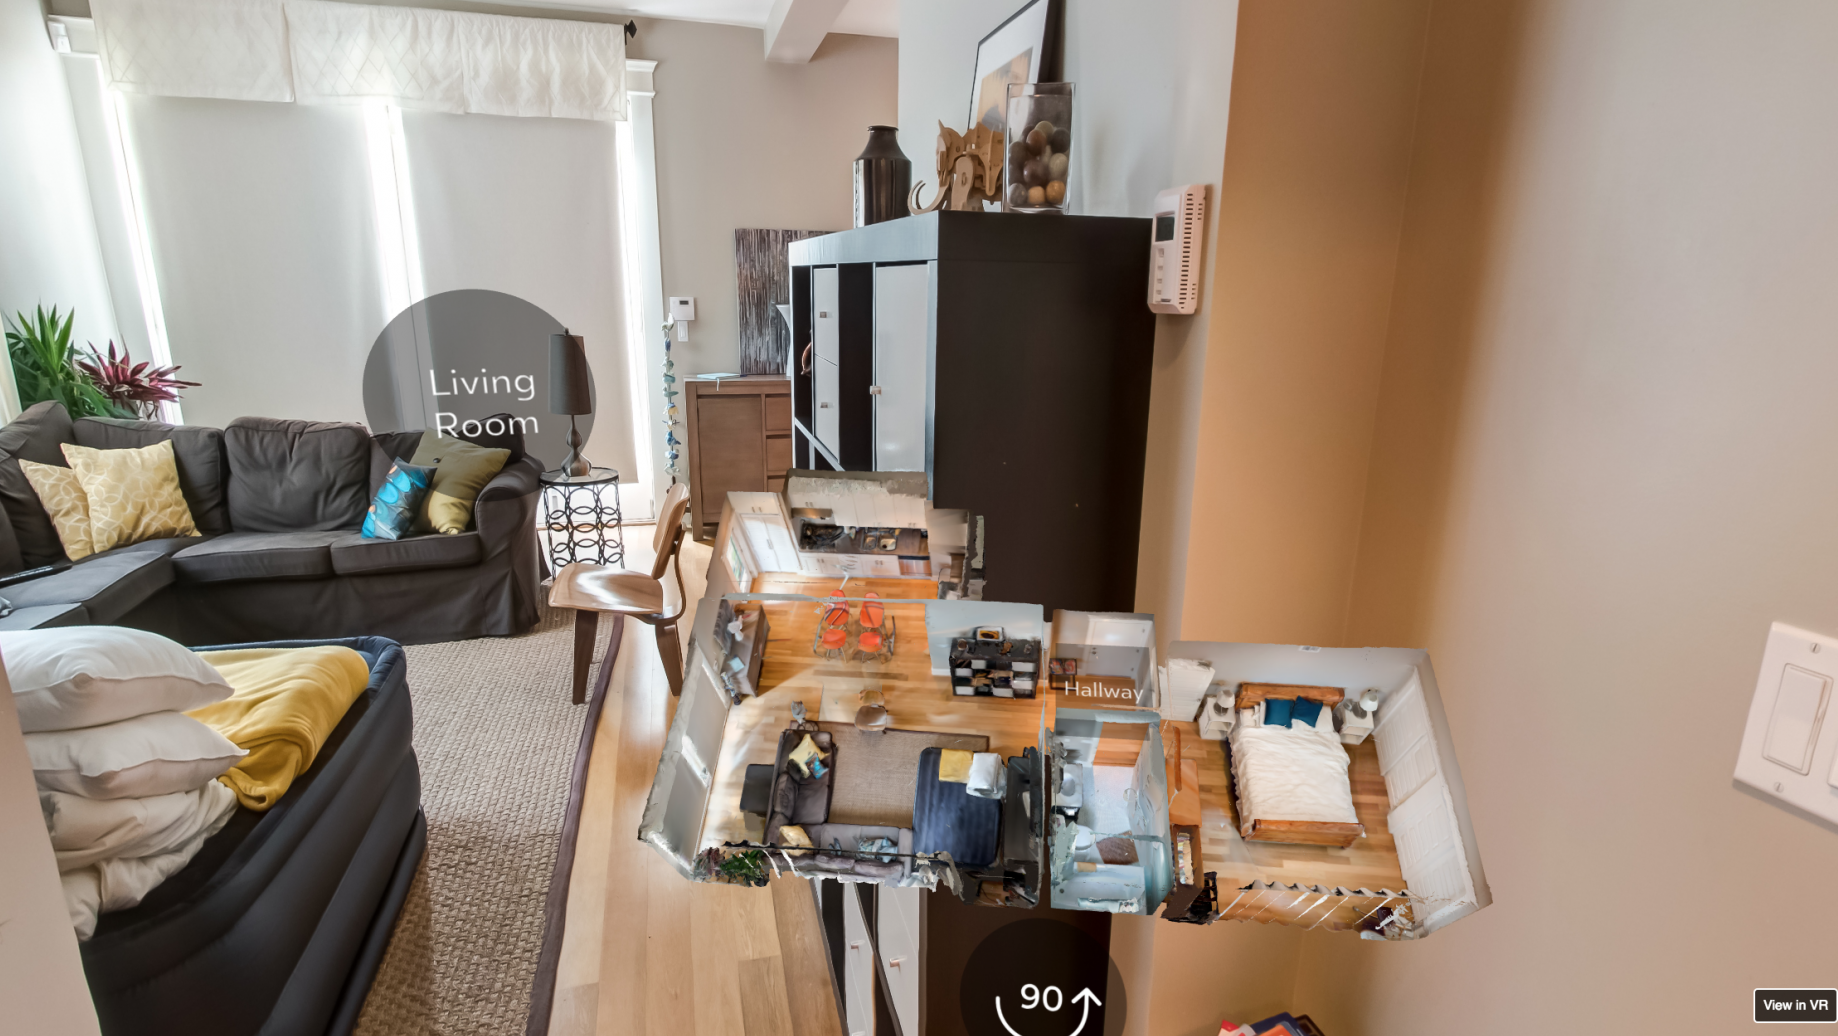 Airbnb Adopts AR/VR to Let You Visit A Home Before Renting It | All3DP